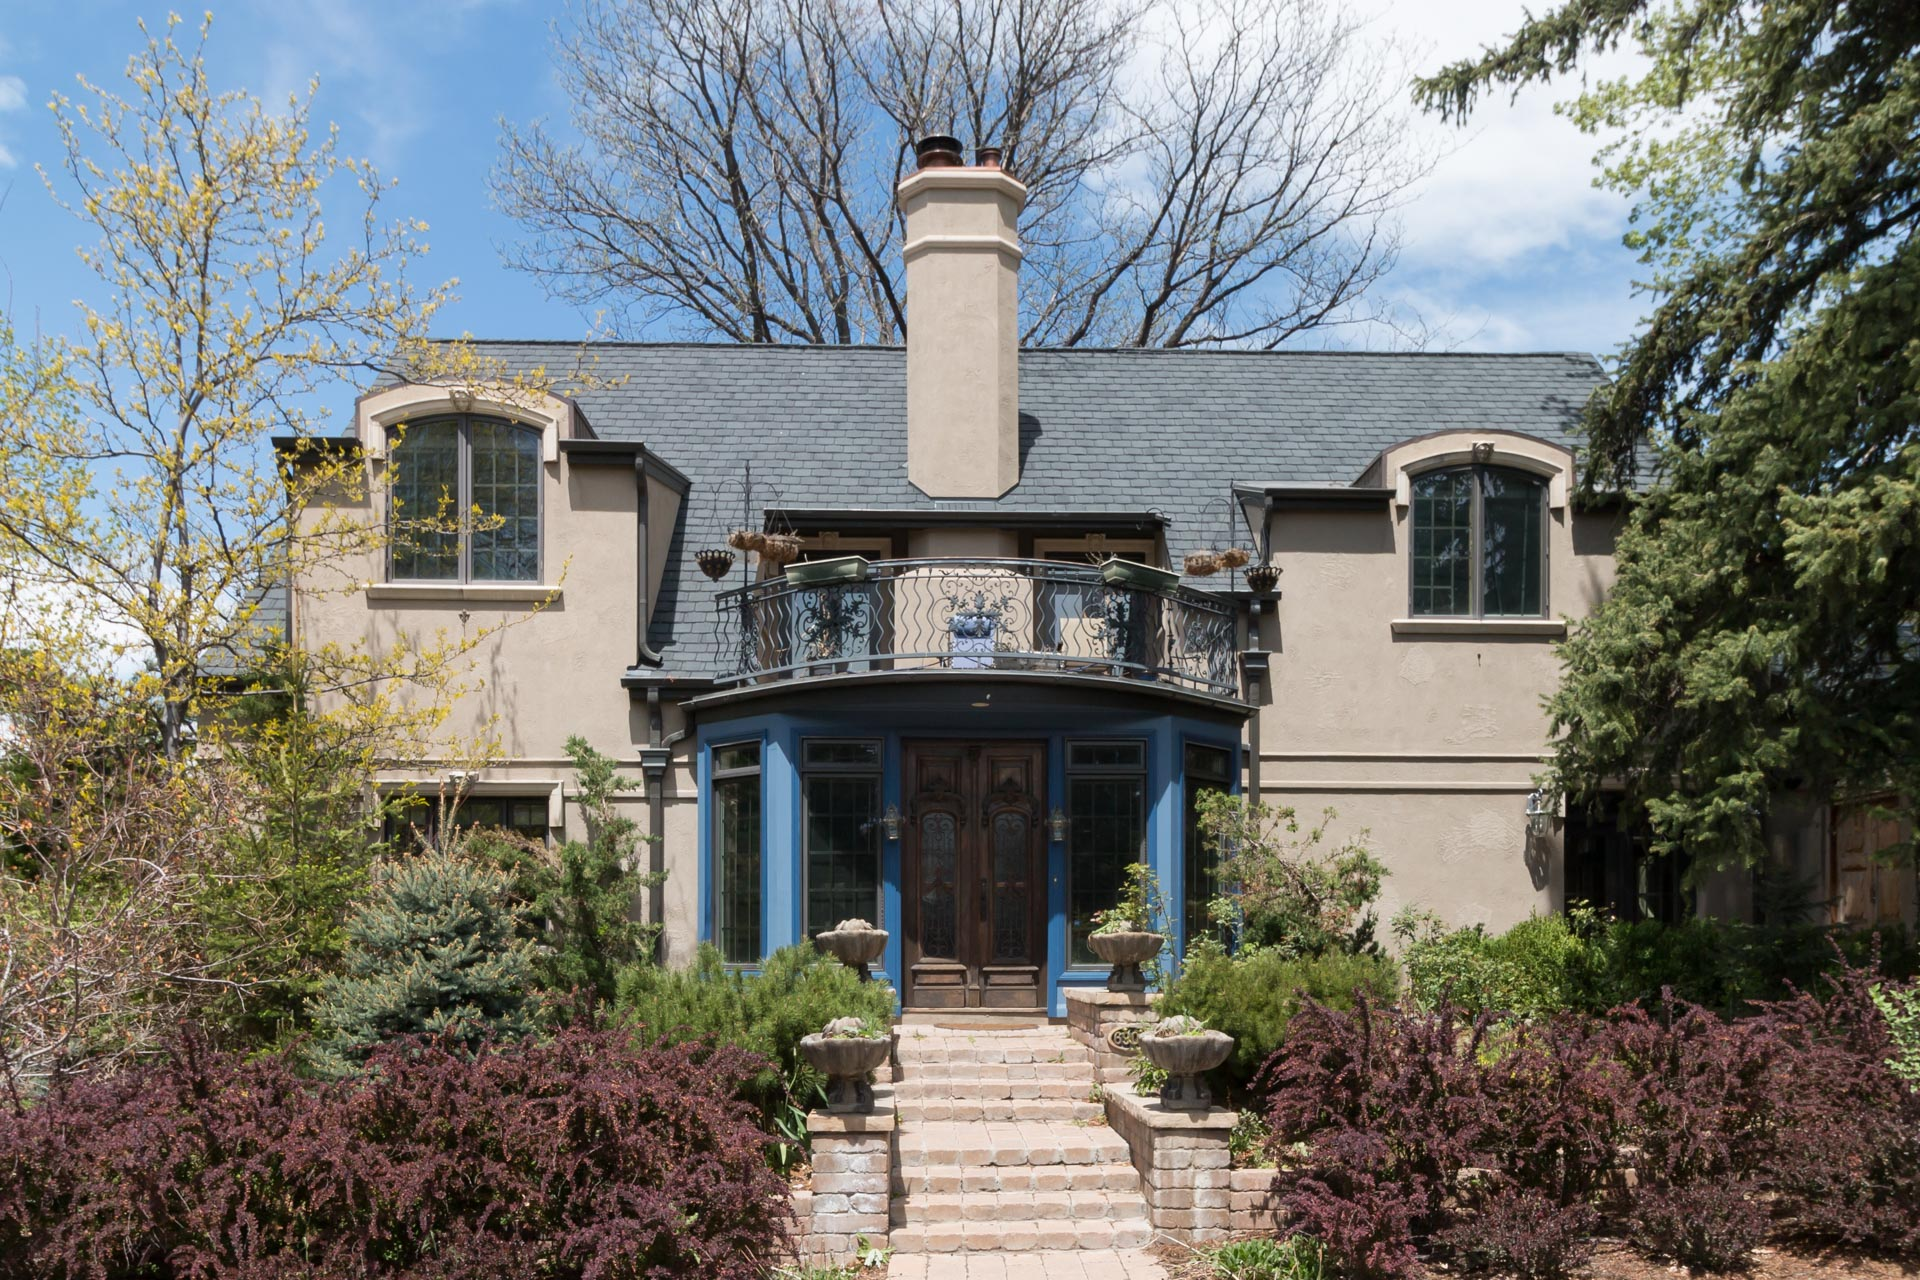 One of many different architectural styles in the Montclair neighborhood of Denver.